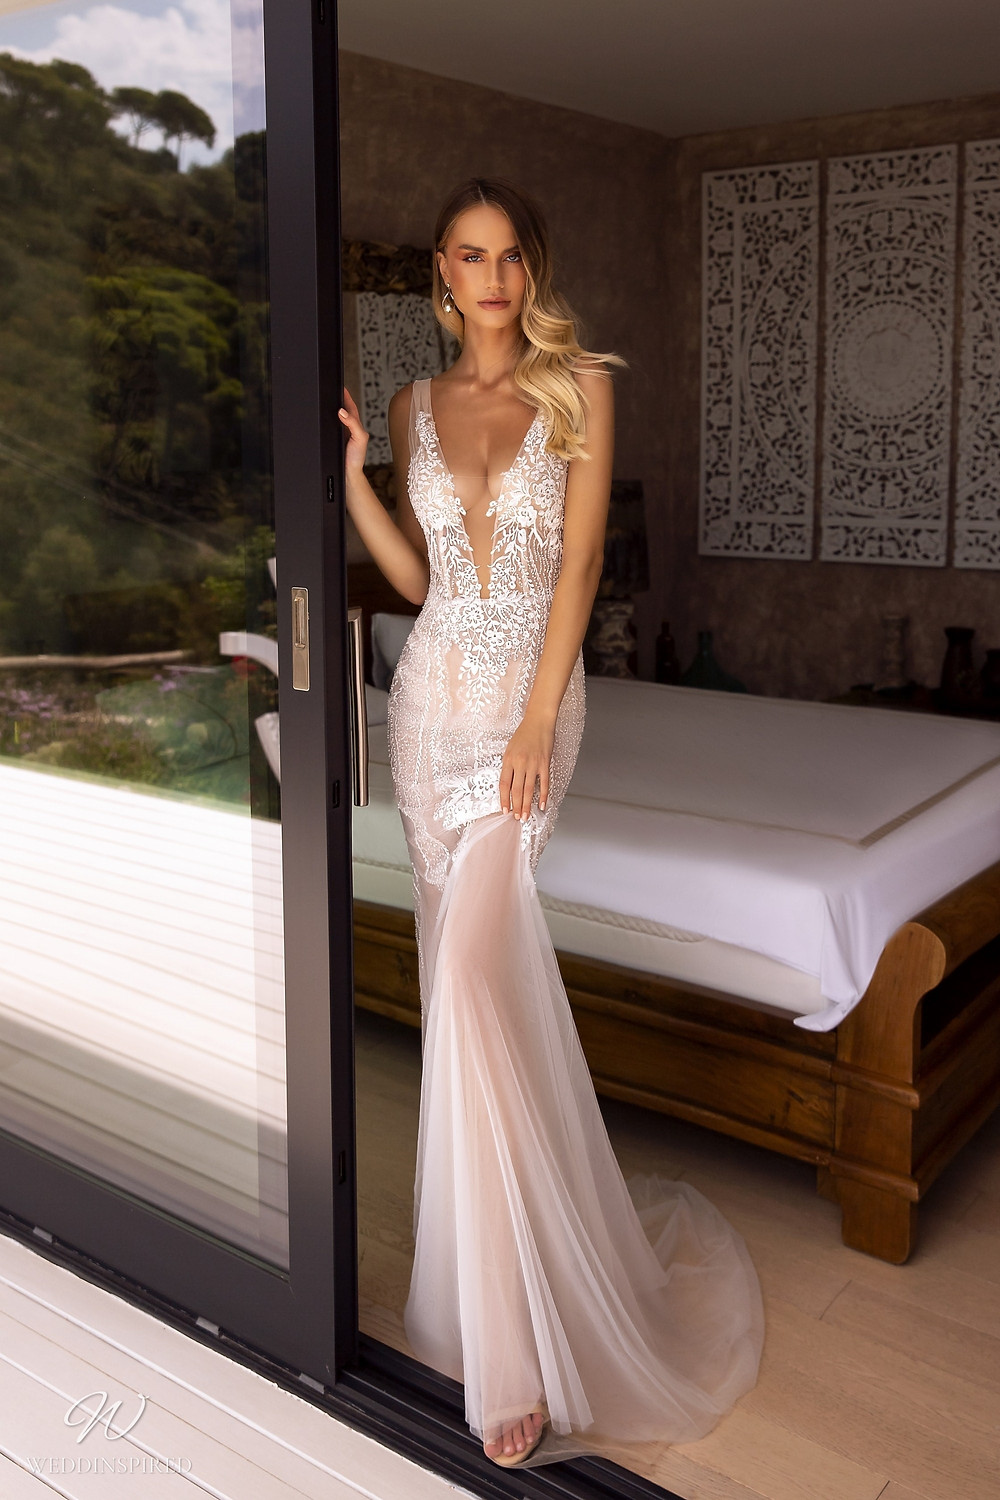 A Tina Valerdi fit and flare tulle wedding dress with a deep v neckline